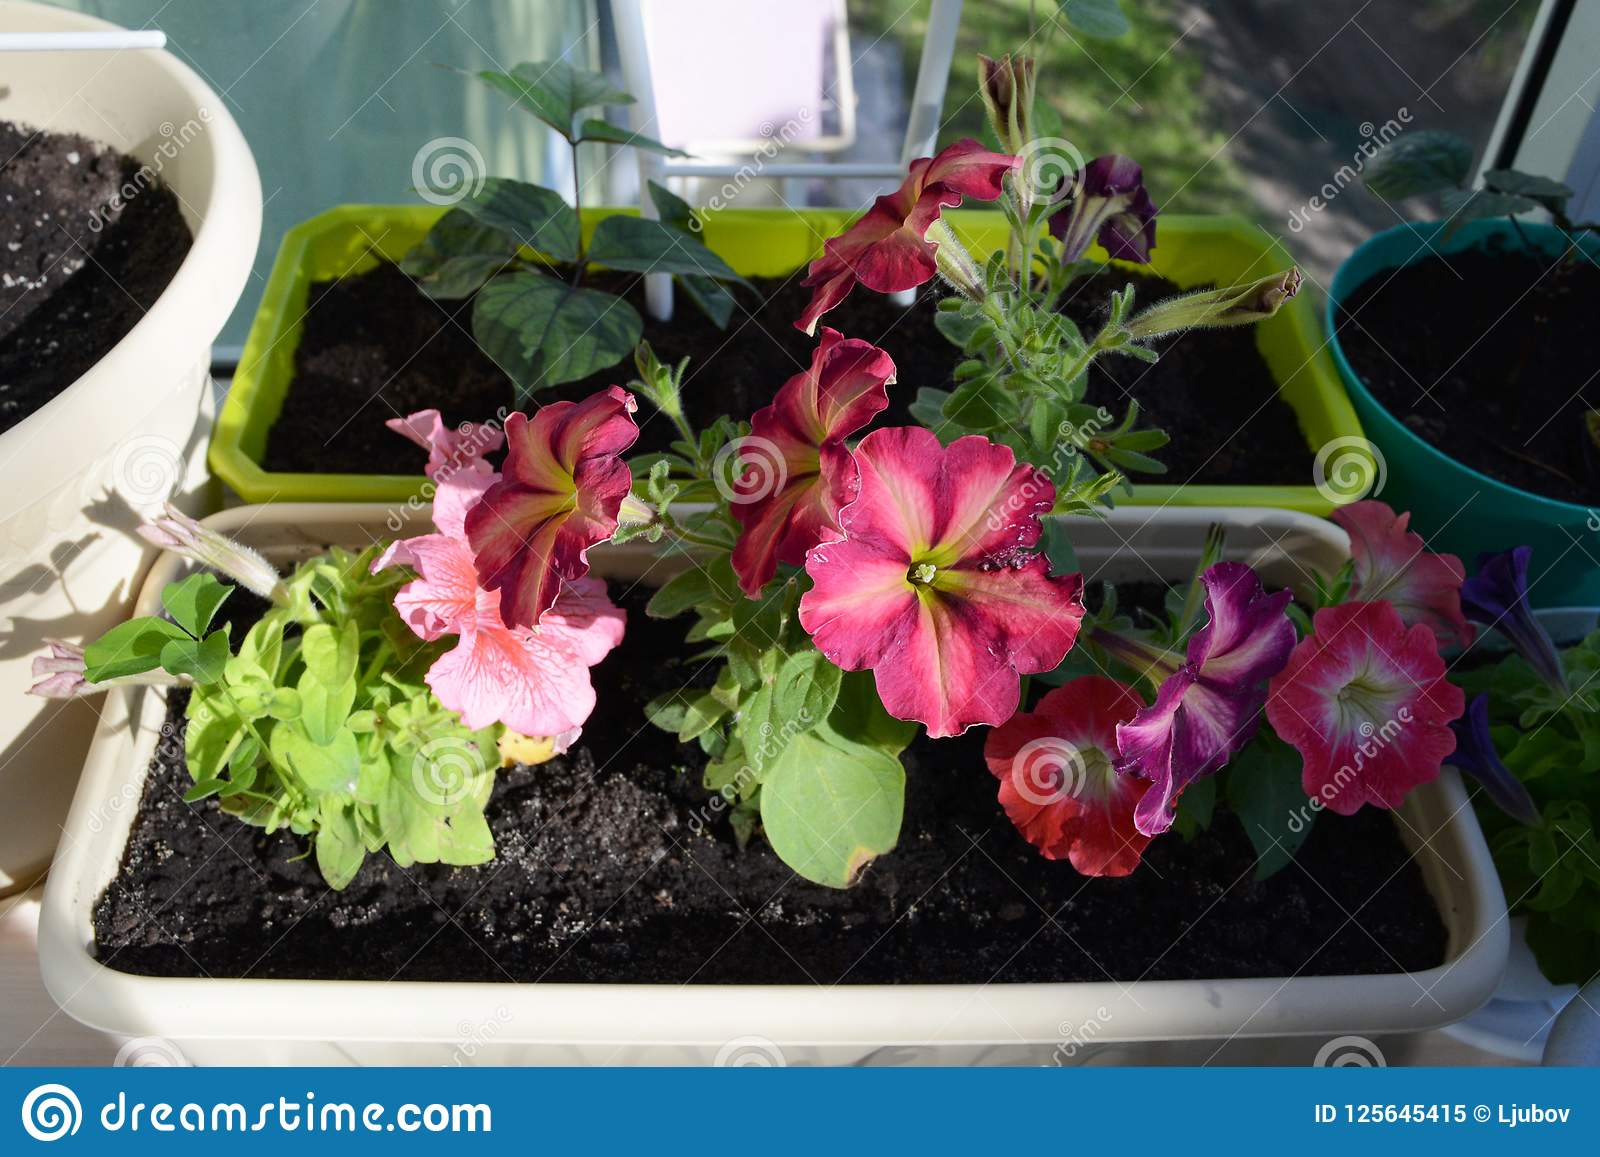 Balcony gardening with flowers in pots and planters beautiful download balcony gardening with flowers in pots and planters beautiful petunias grow in box in izmirmasajfo